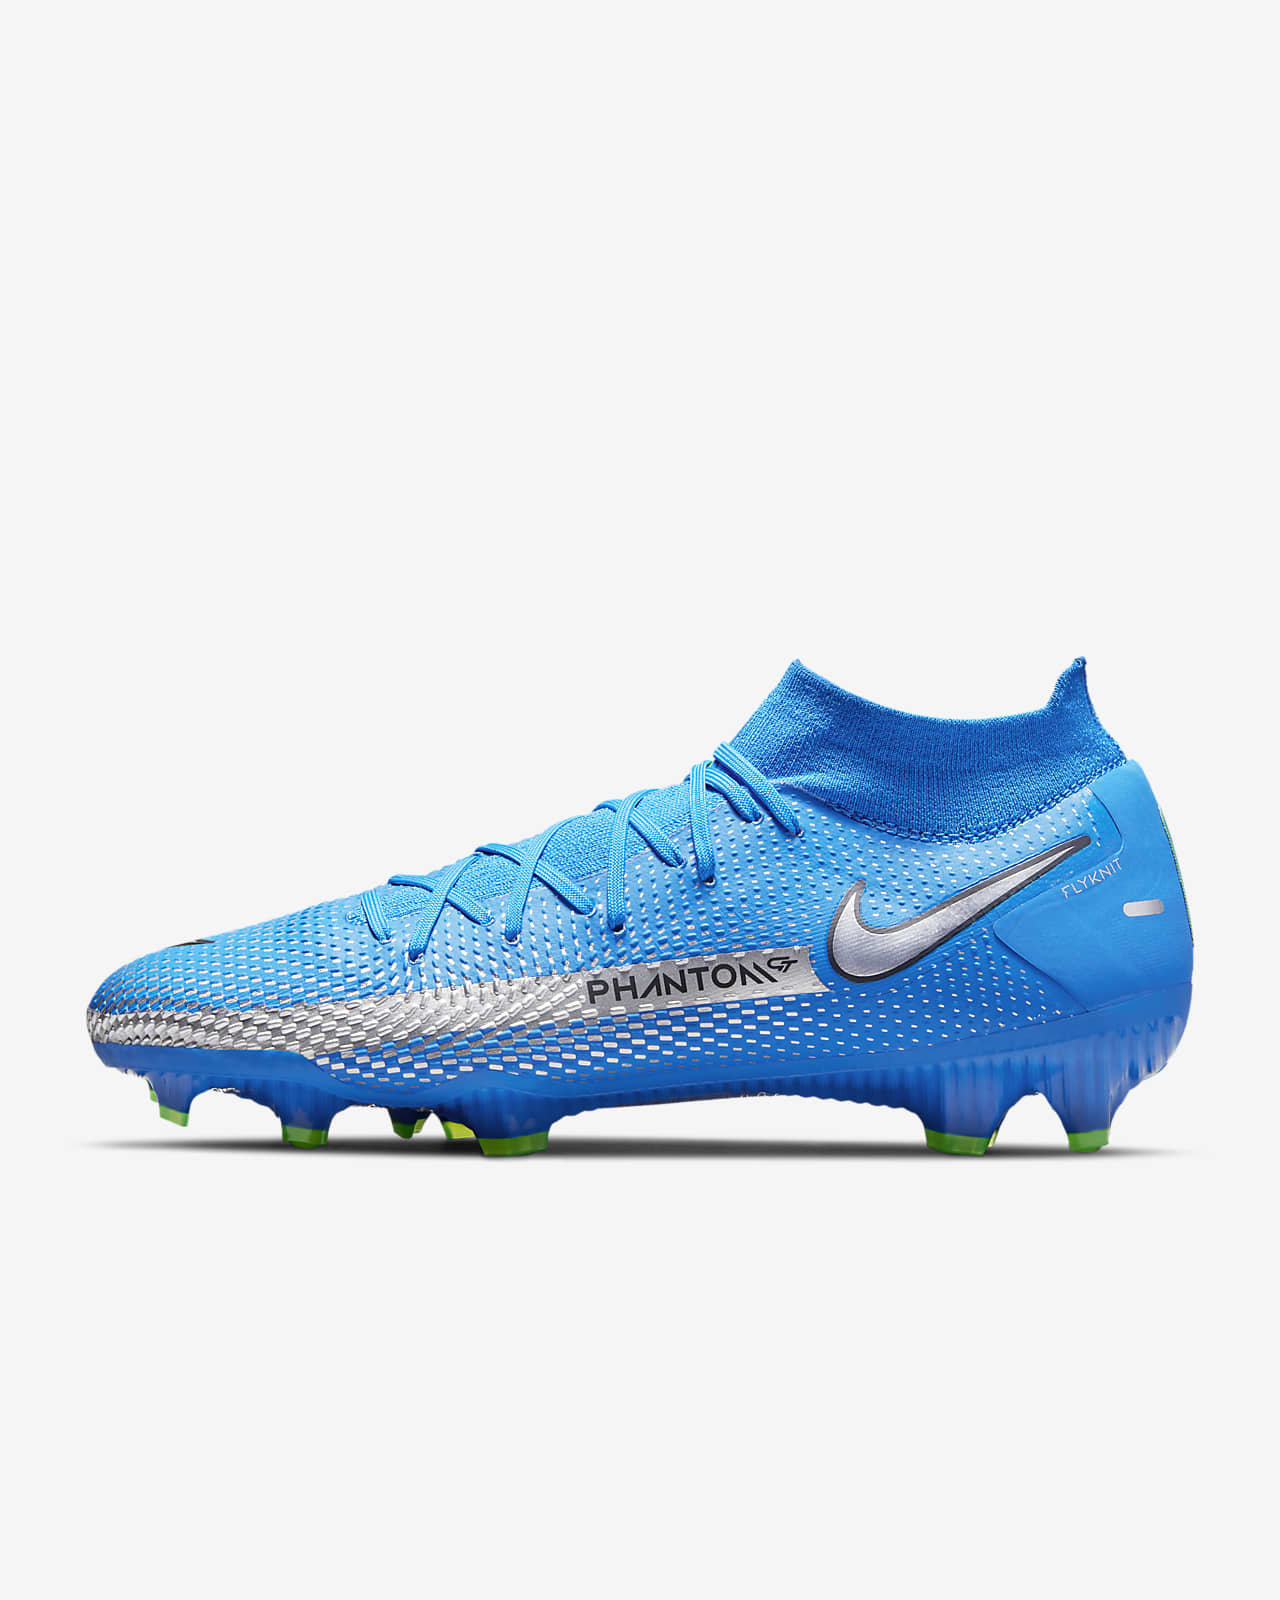 Nike Phantom GT Pro Dynamic Fit FG Firm-Ground Soccer Cleat